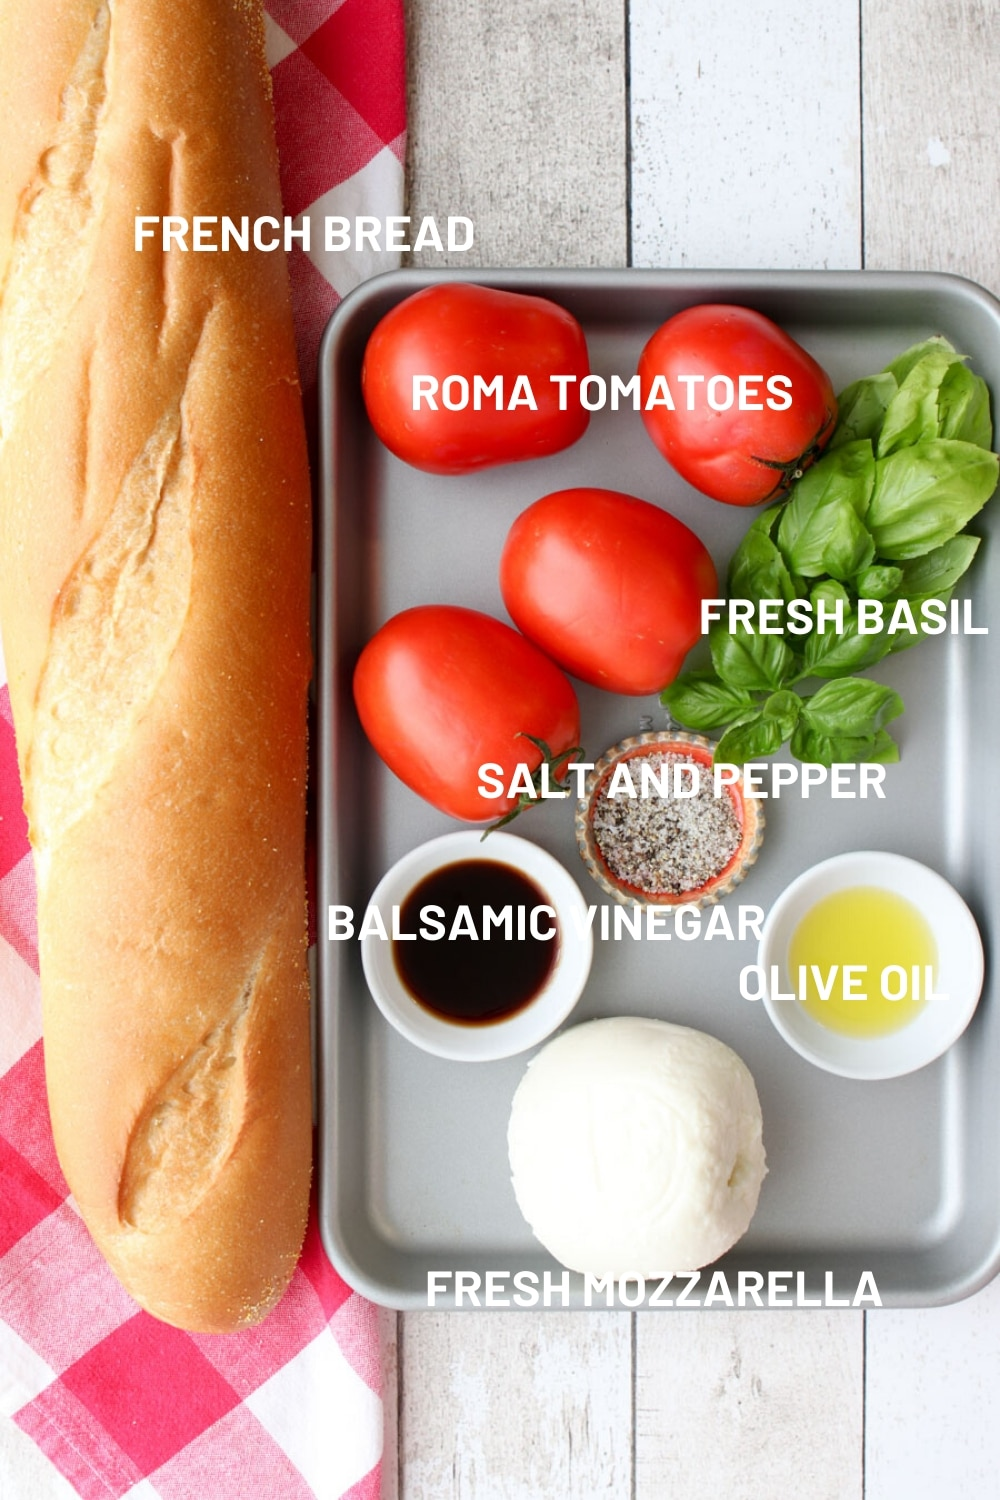 A tray with all of the ingredients to make bruschetta